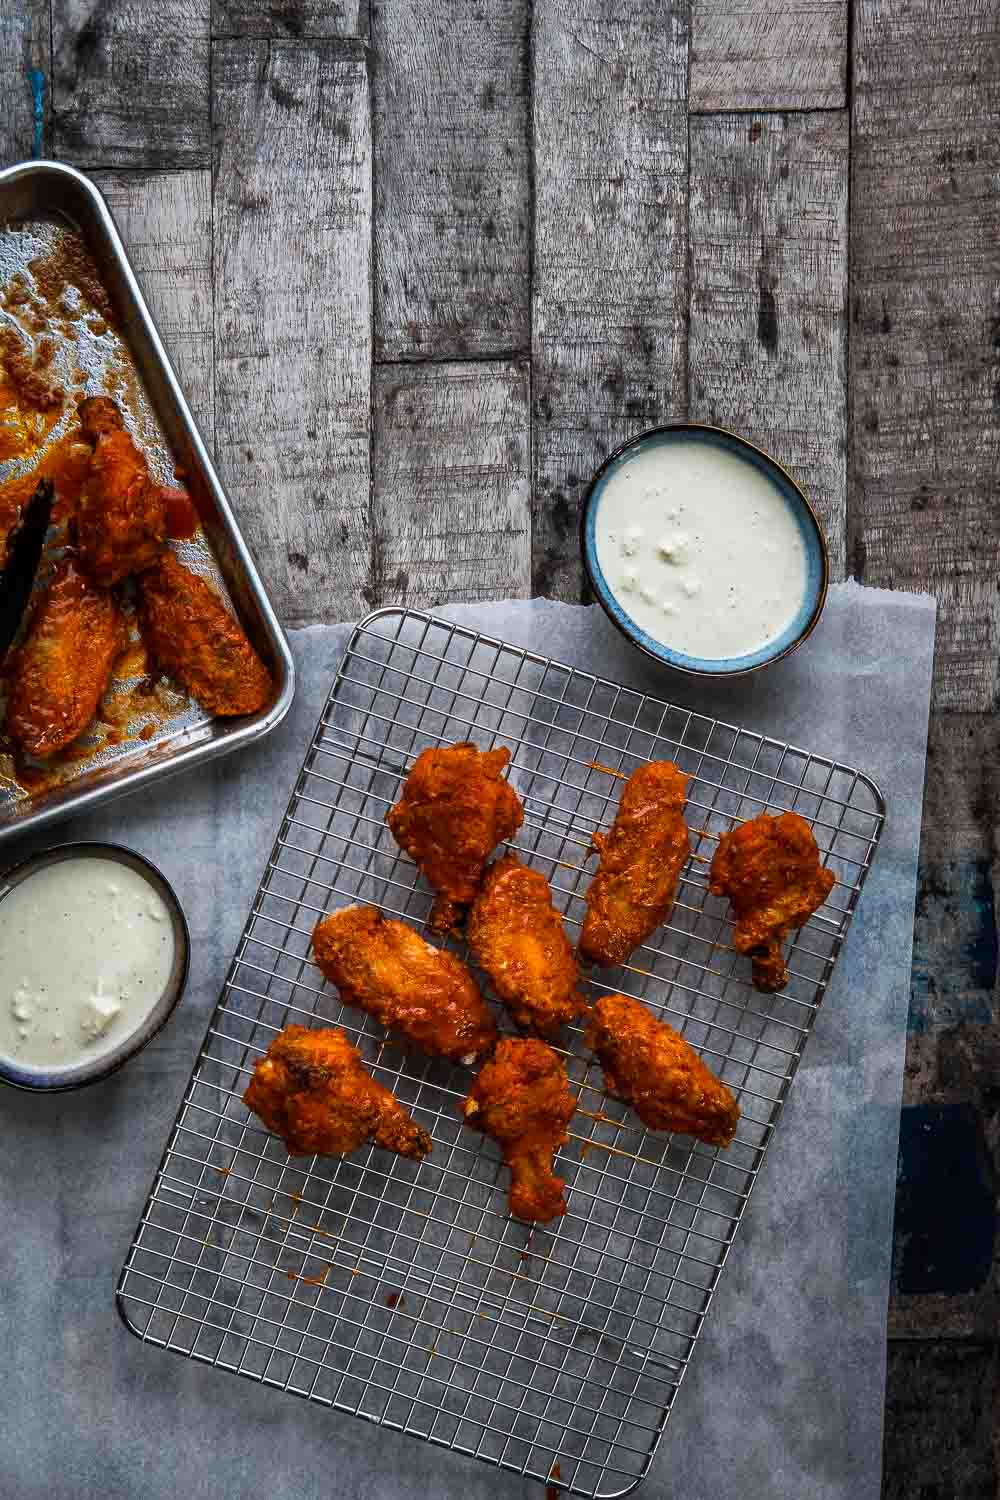 Buffalo Chicken Wings Backofen Rezept Marinade Super Bowl Essen Ofen offen